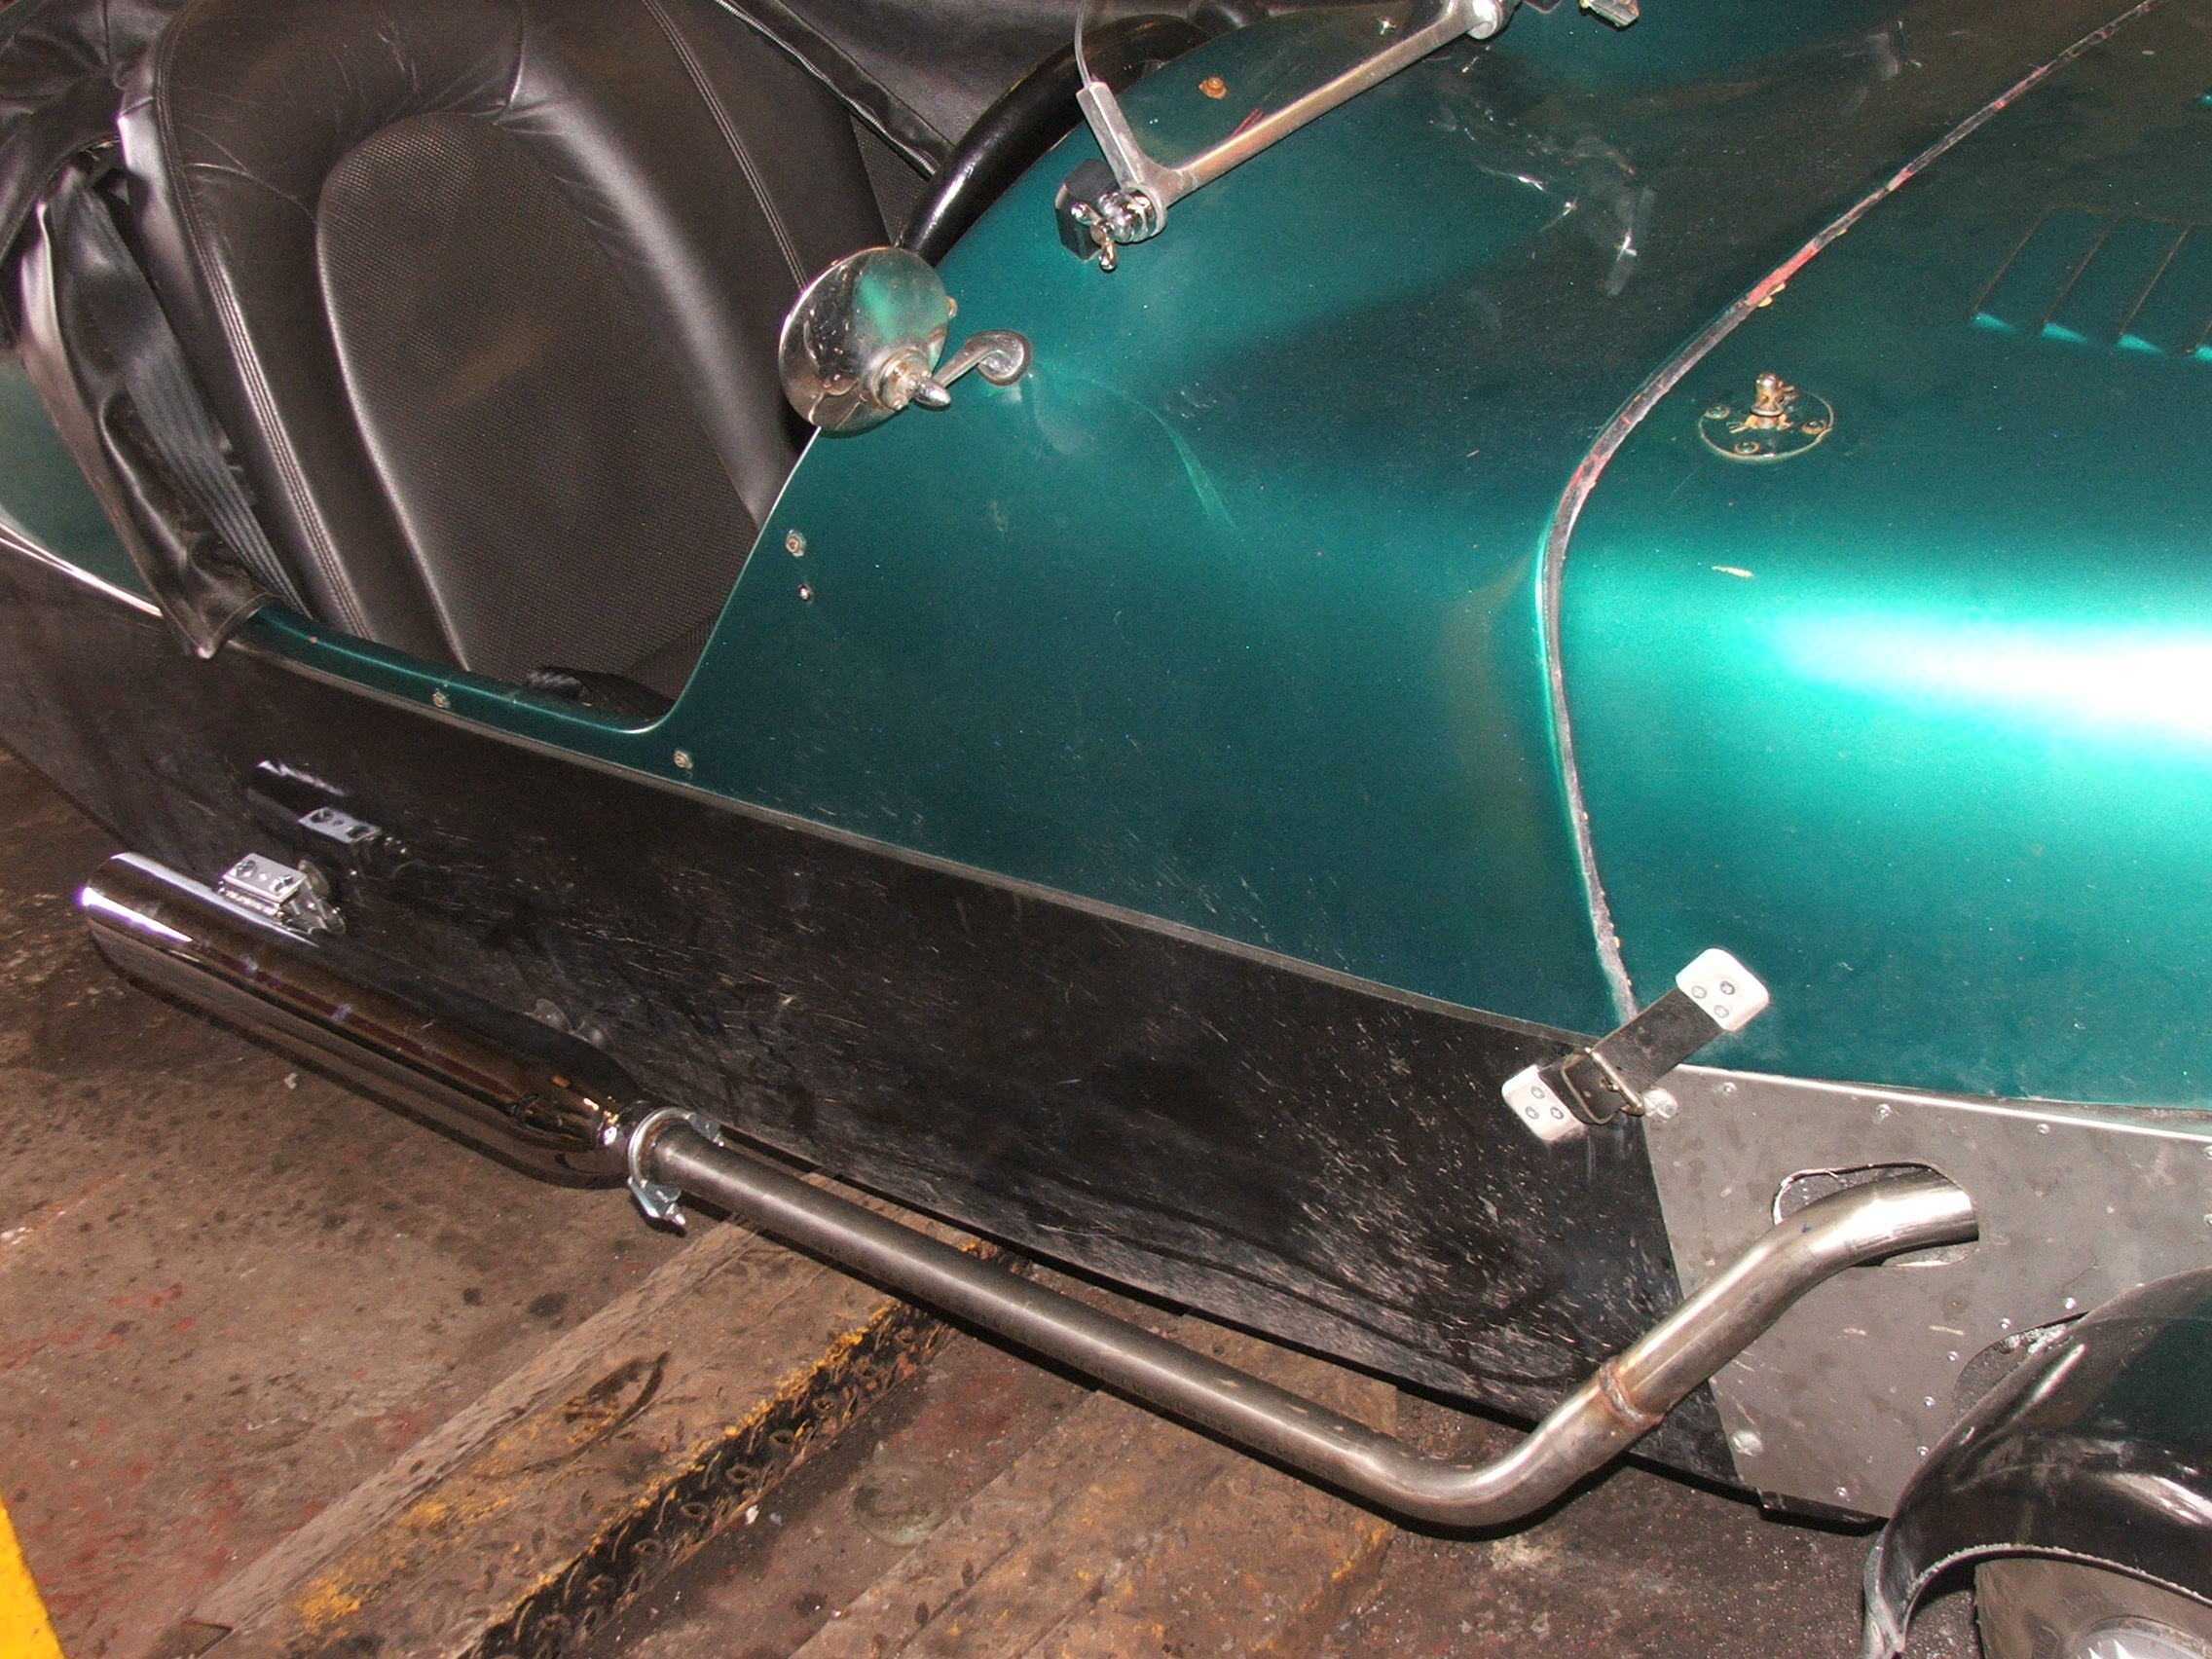 Posted in Exhausts , Garage Services , Project Cars | No Comments »